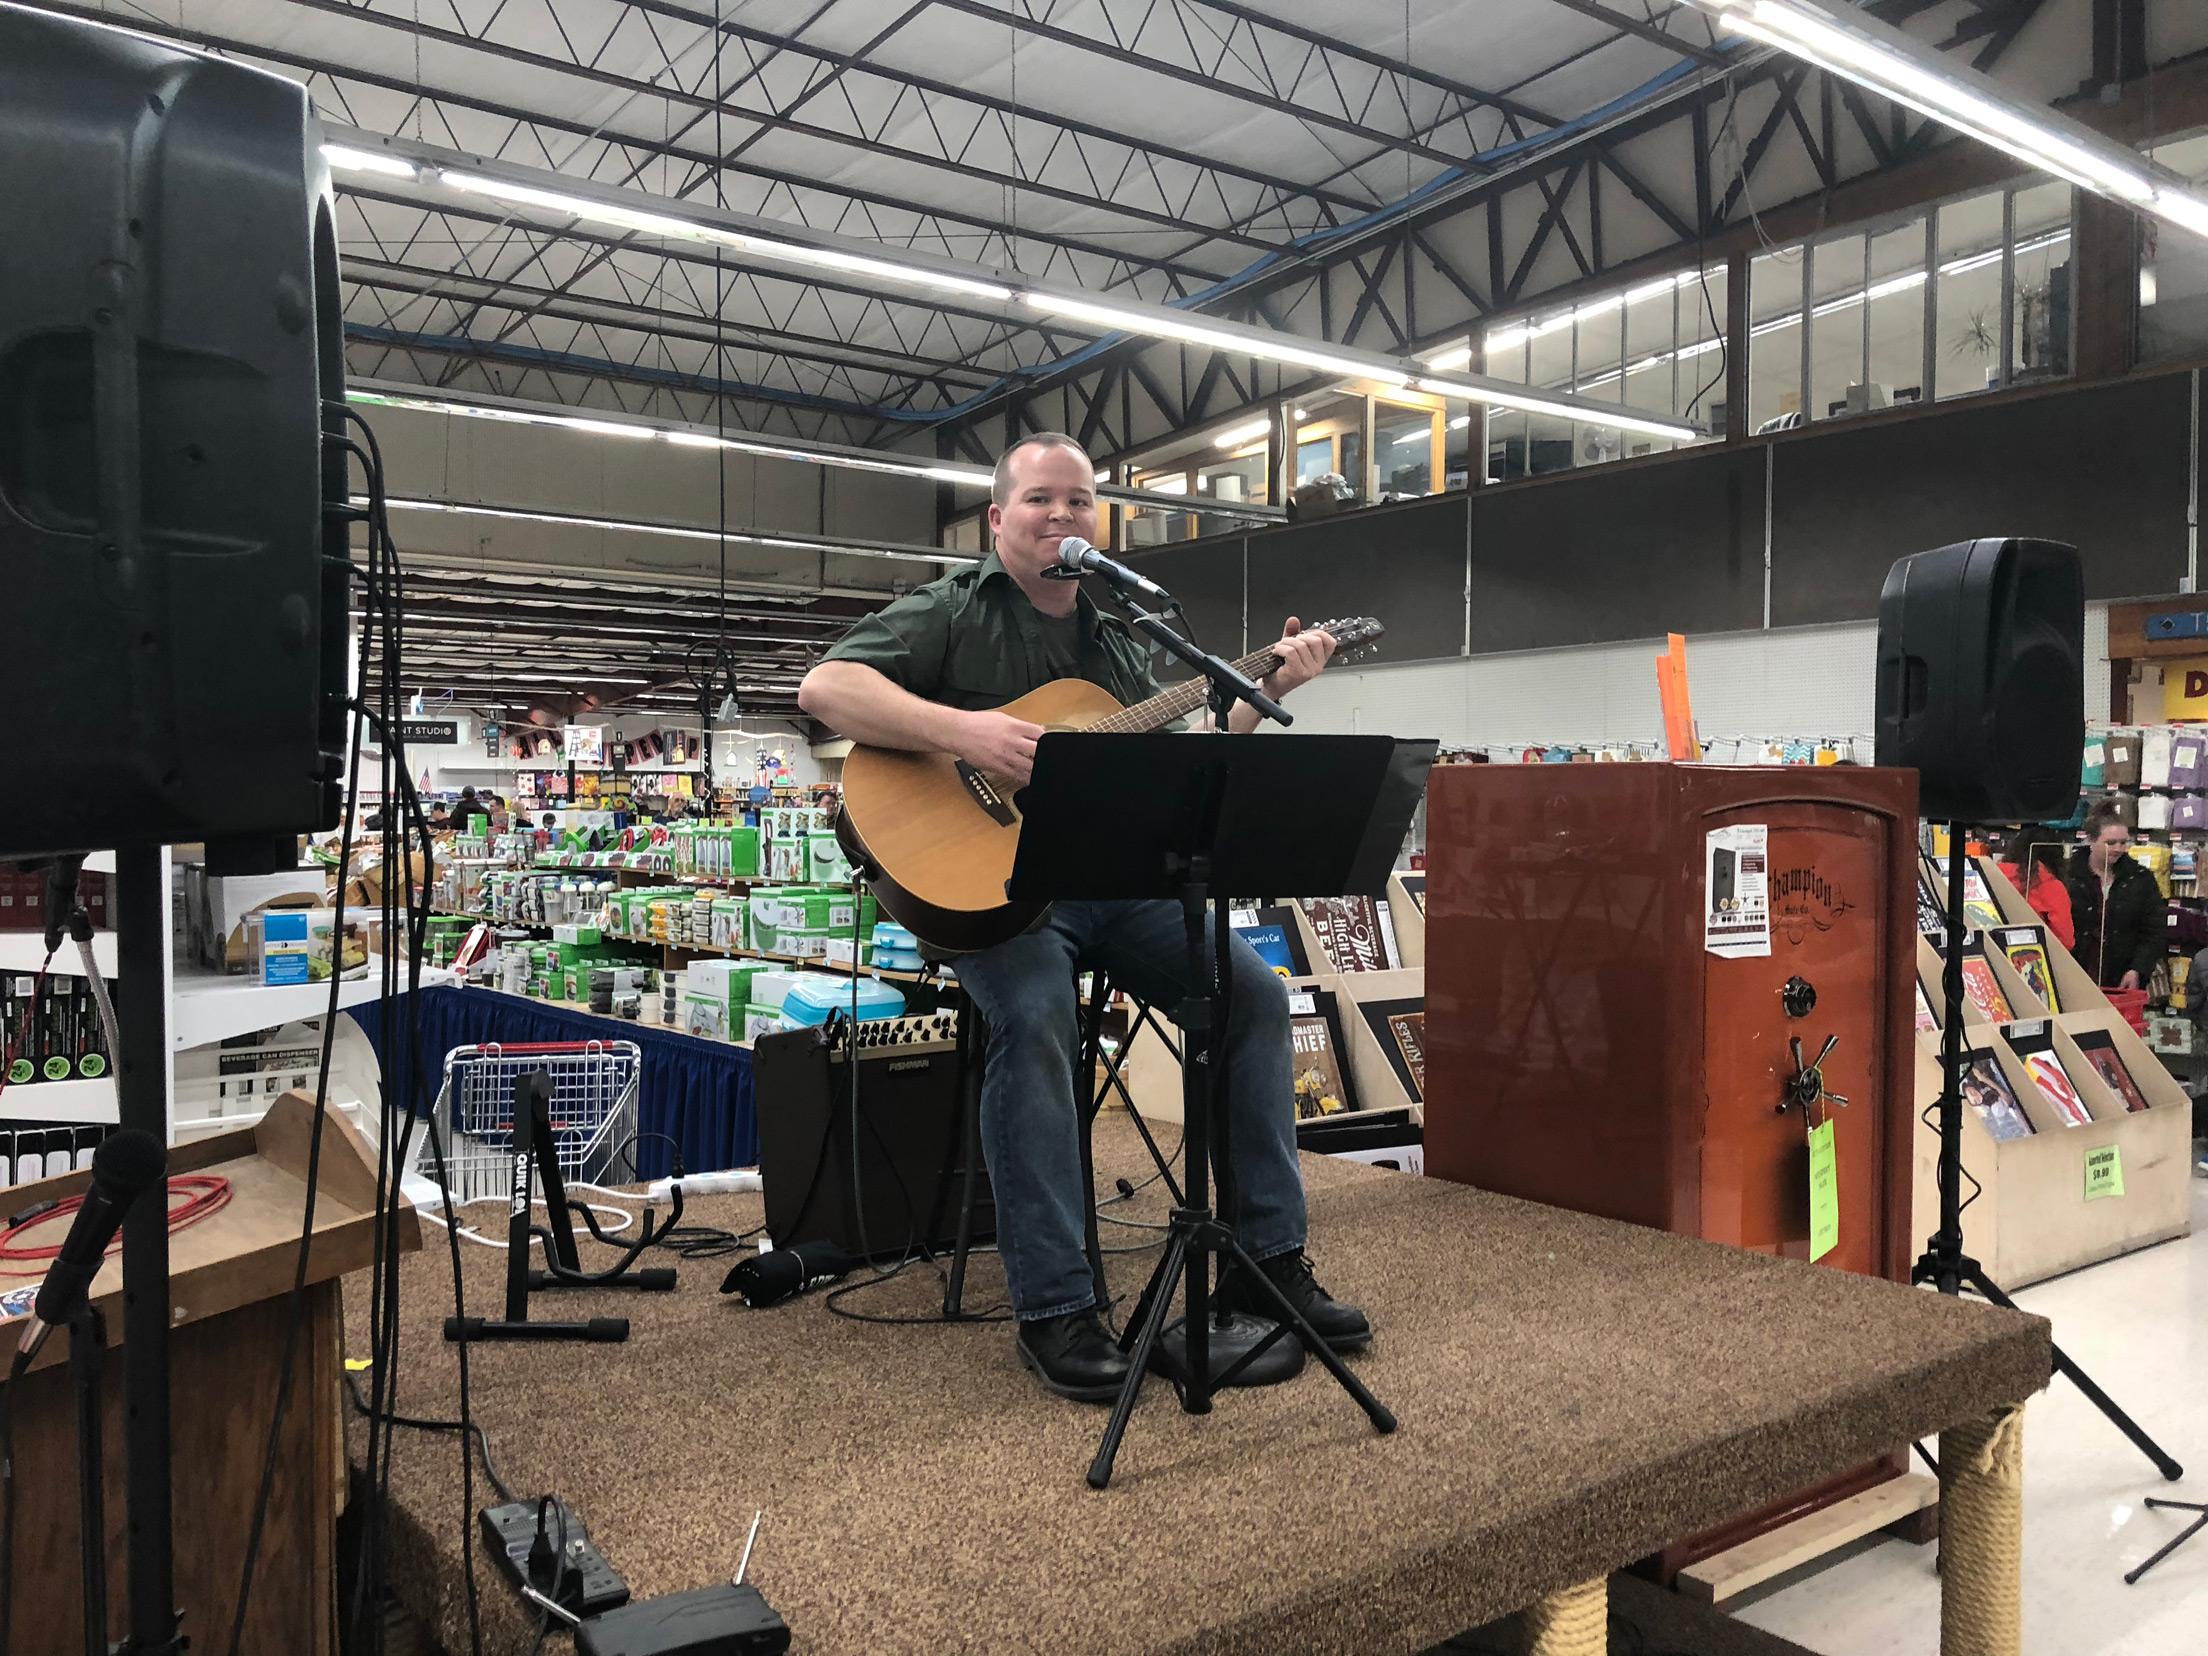 Mark Malan playing his acoustic guitar for live entertainment and fun.